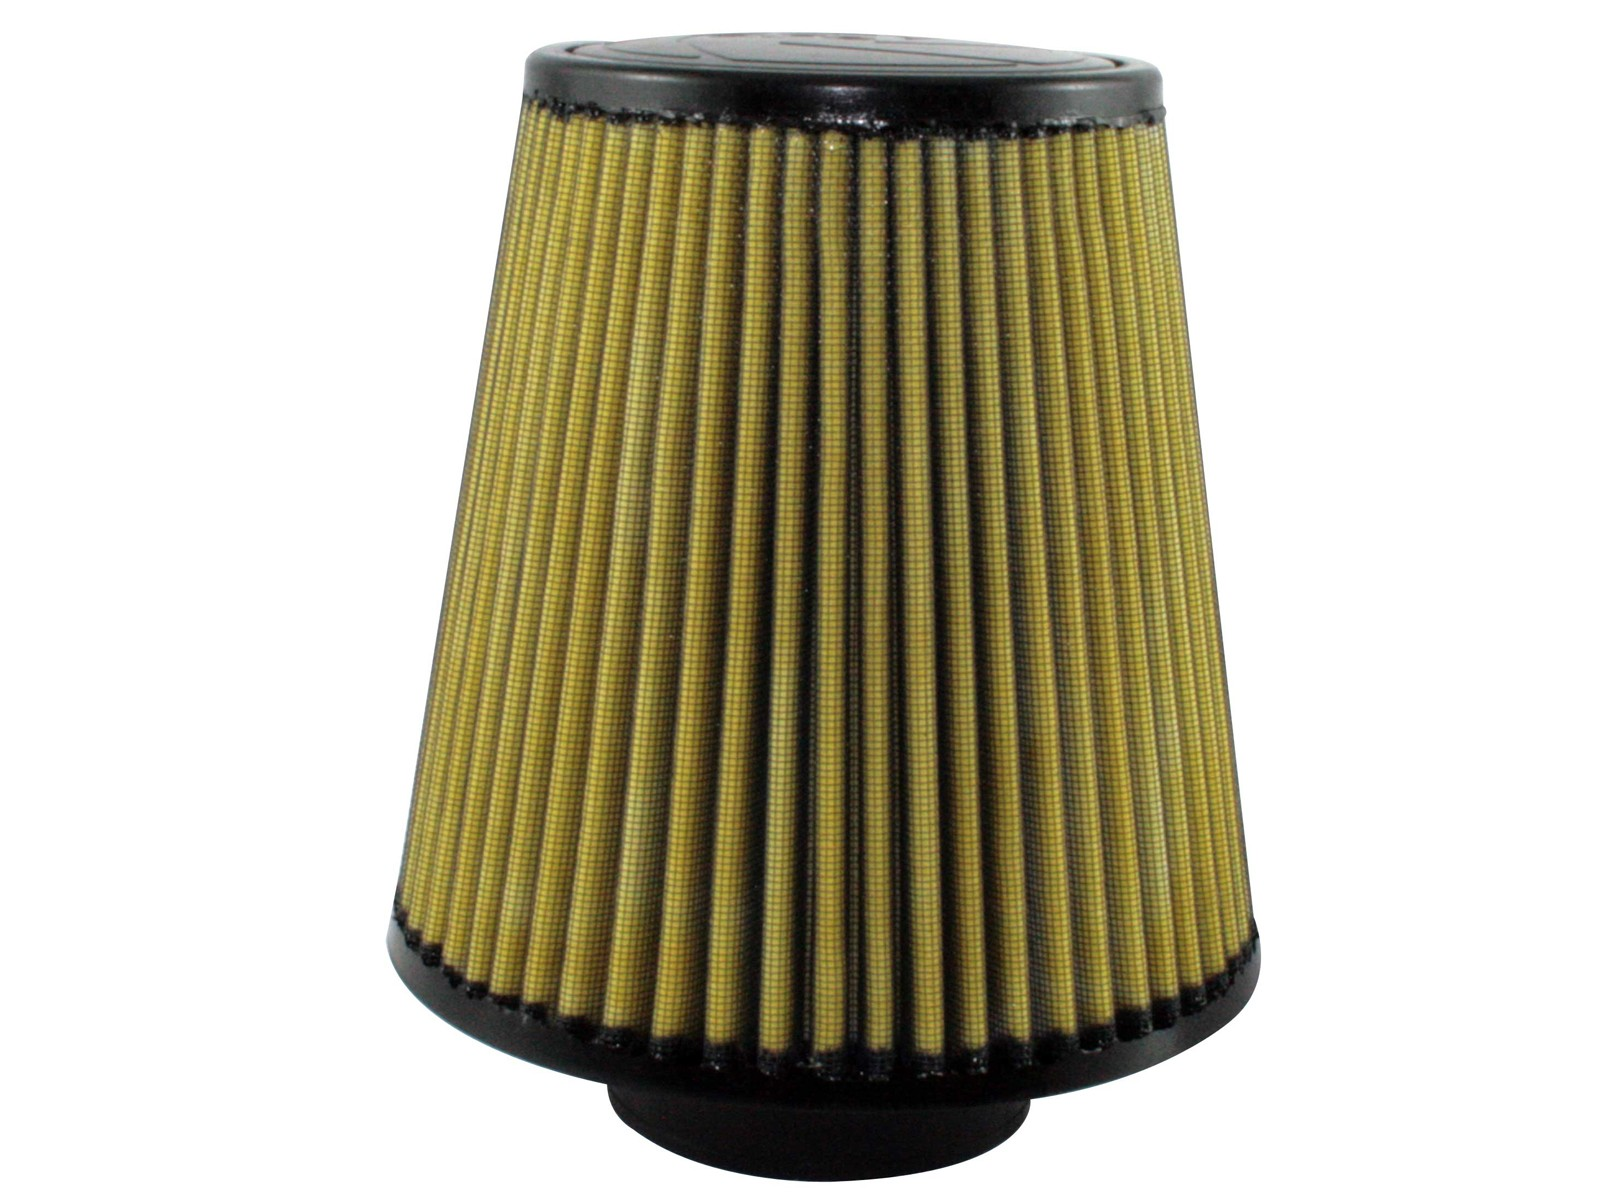 aFe POWER 72-90018 Magnum FLOW Pro GUARD7 Air Filter